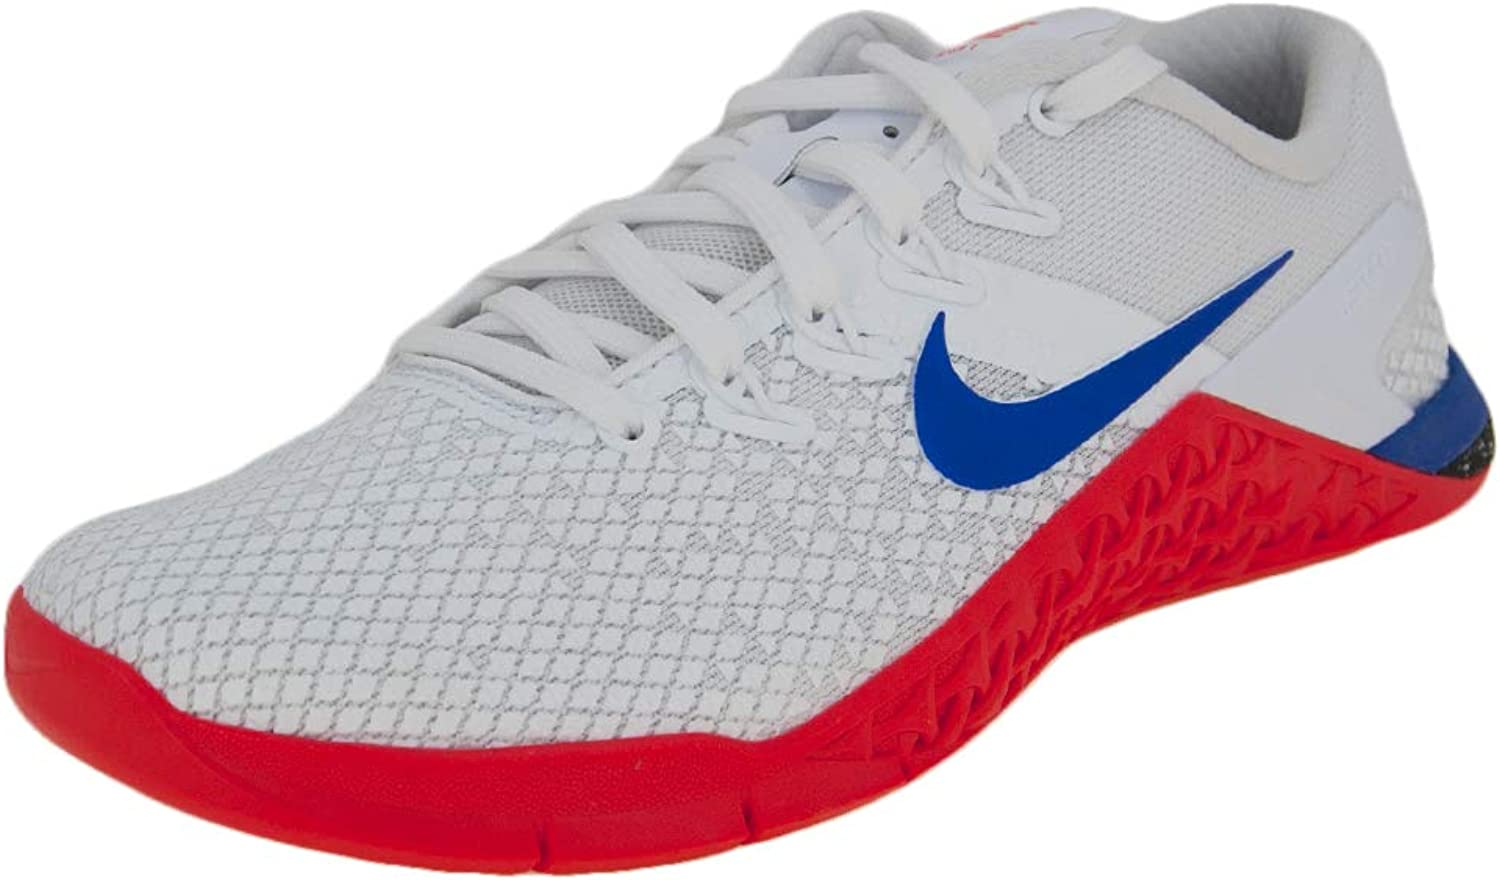 Nike WMNS Metcon 4 XD TG 41 shoes cod CD3128-106 - 9W [US 9.5 UK 7 cm 26.5] White